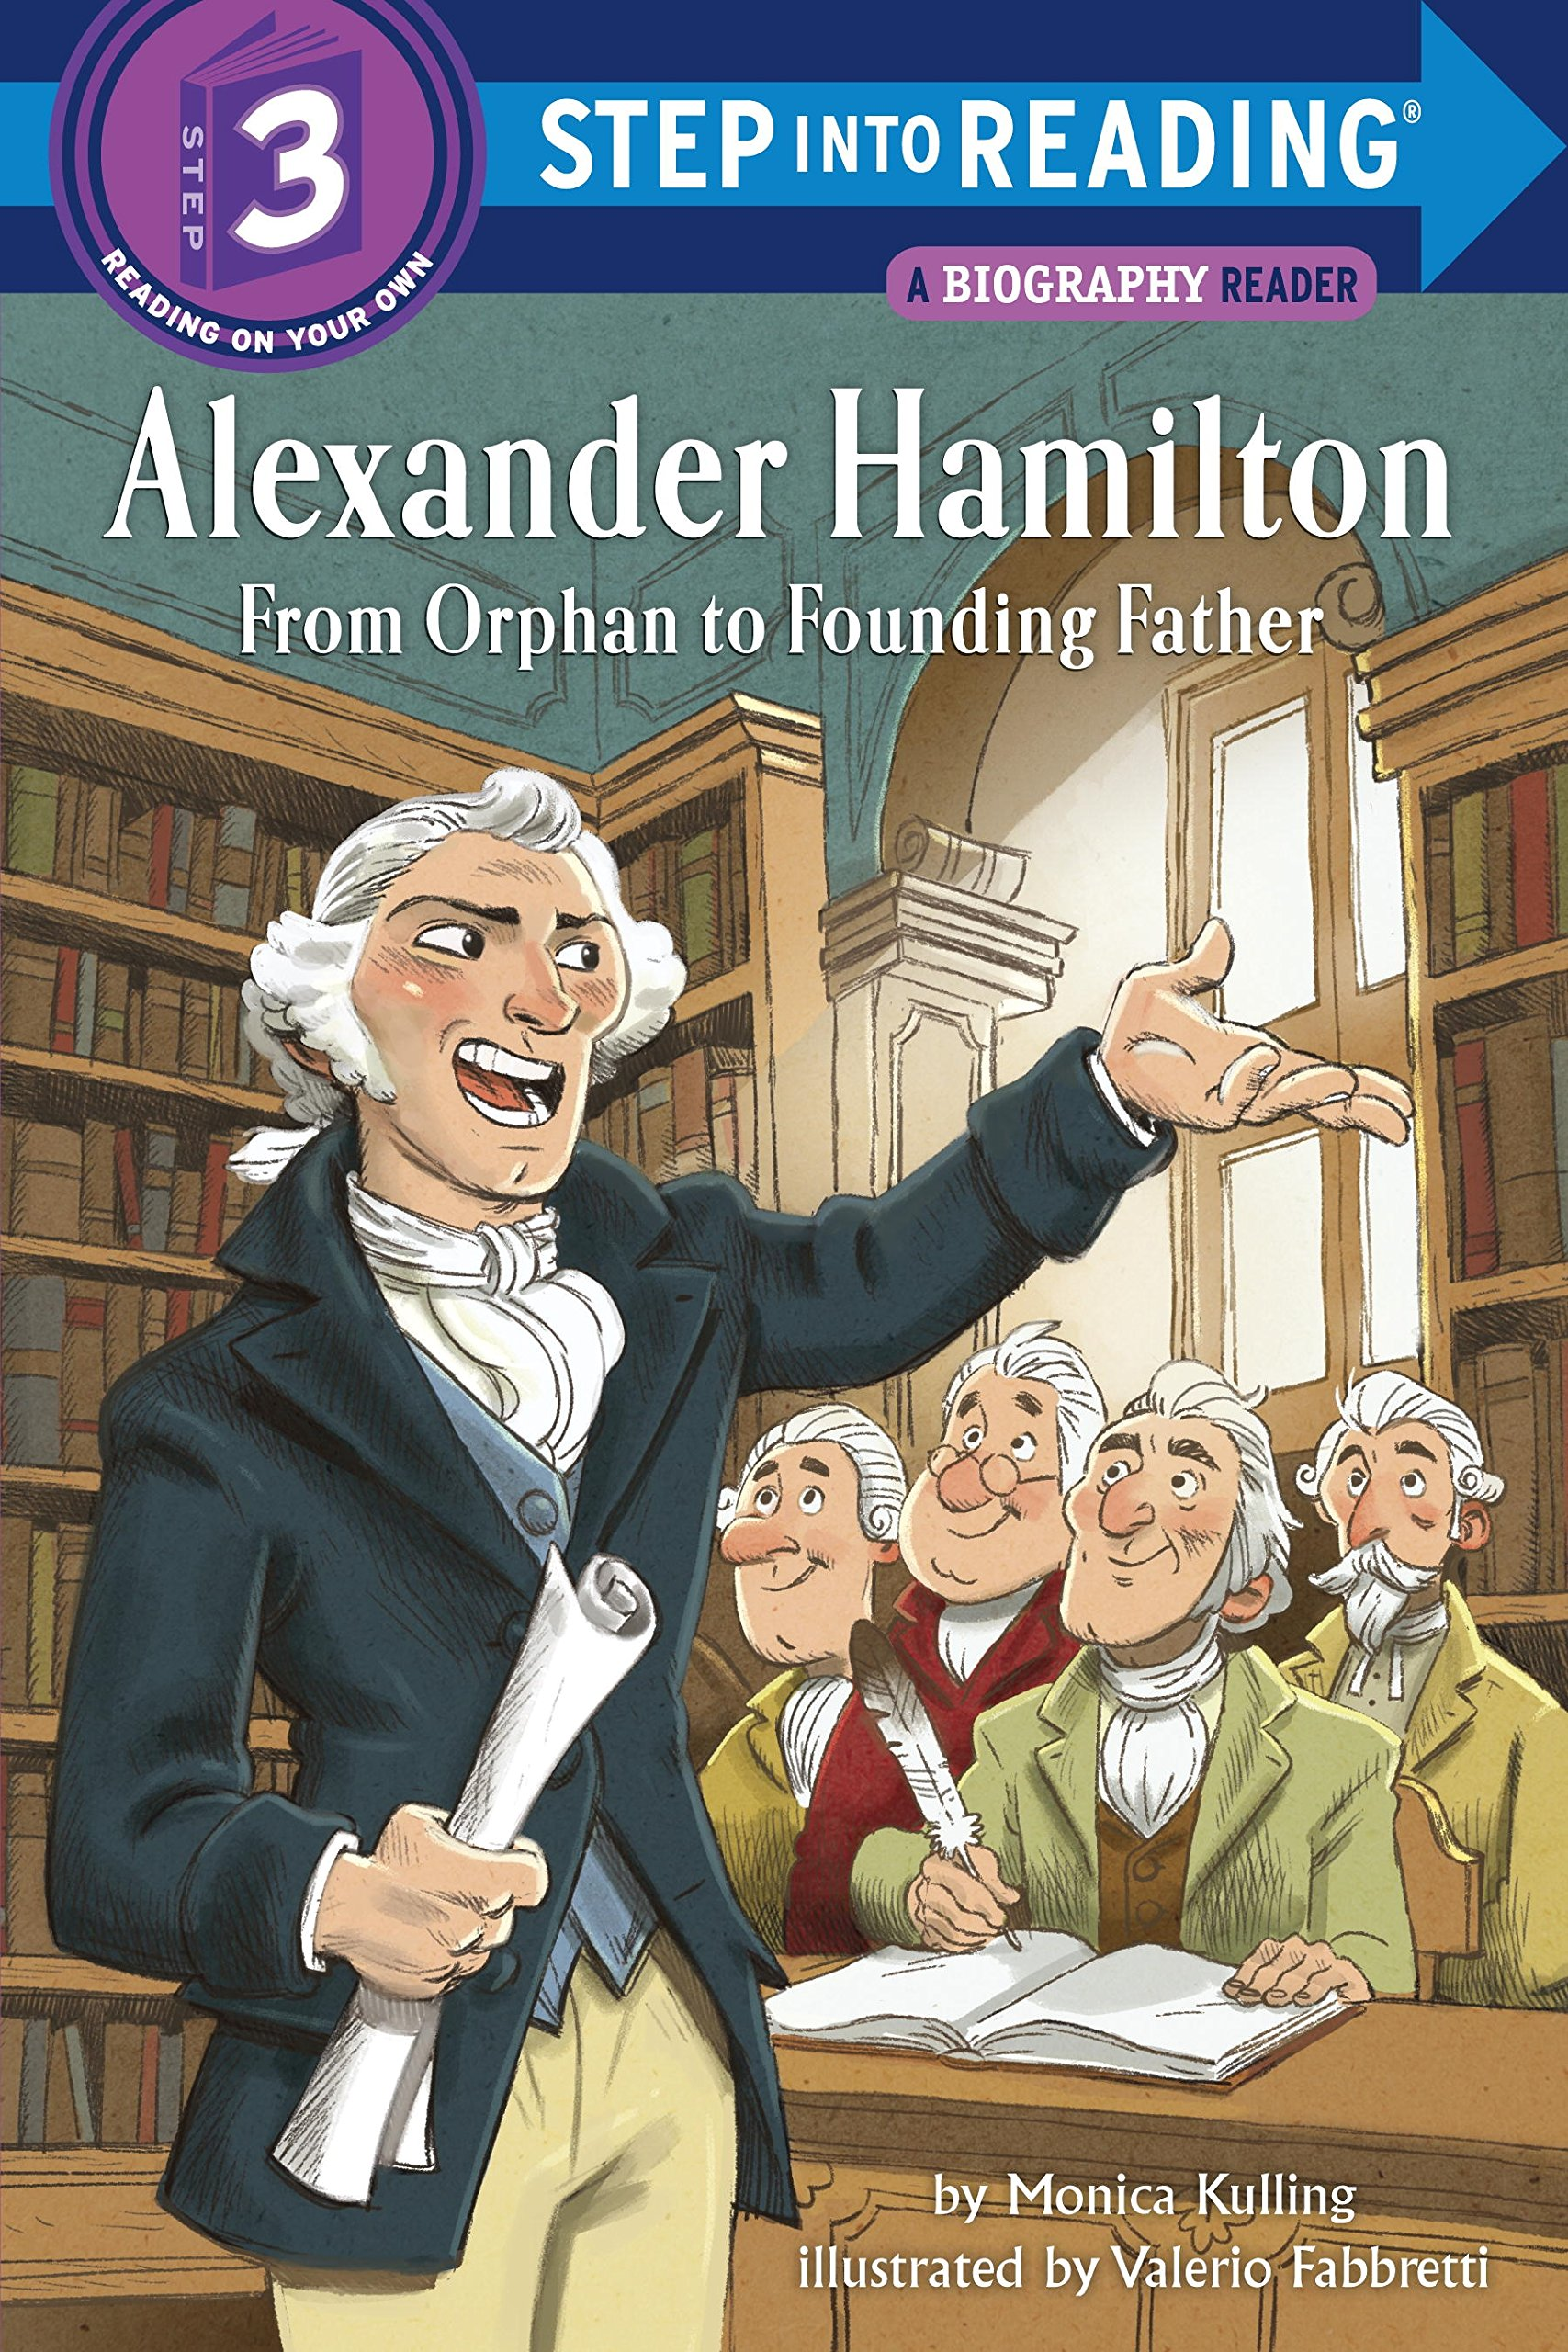 Alexander Hamilton Orphan Founding Reading product image